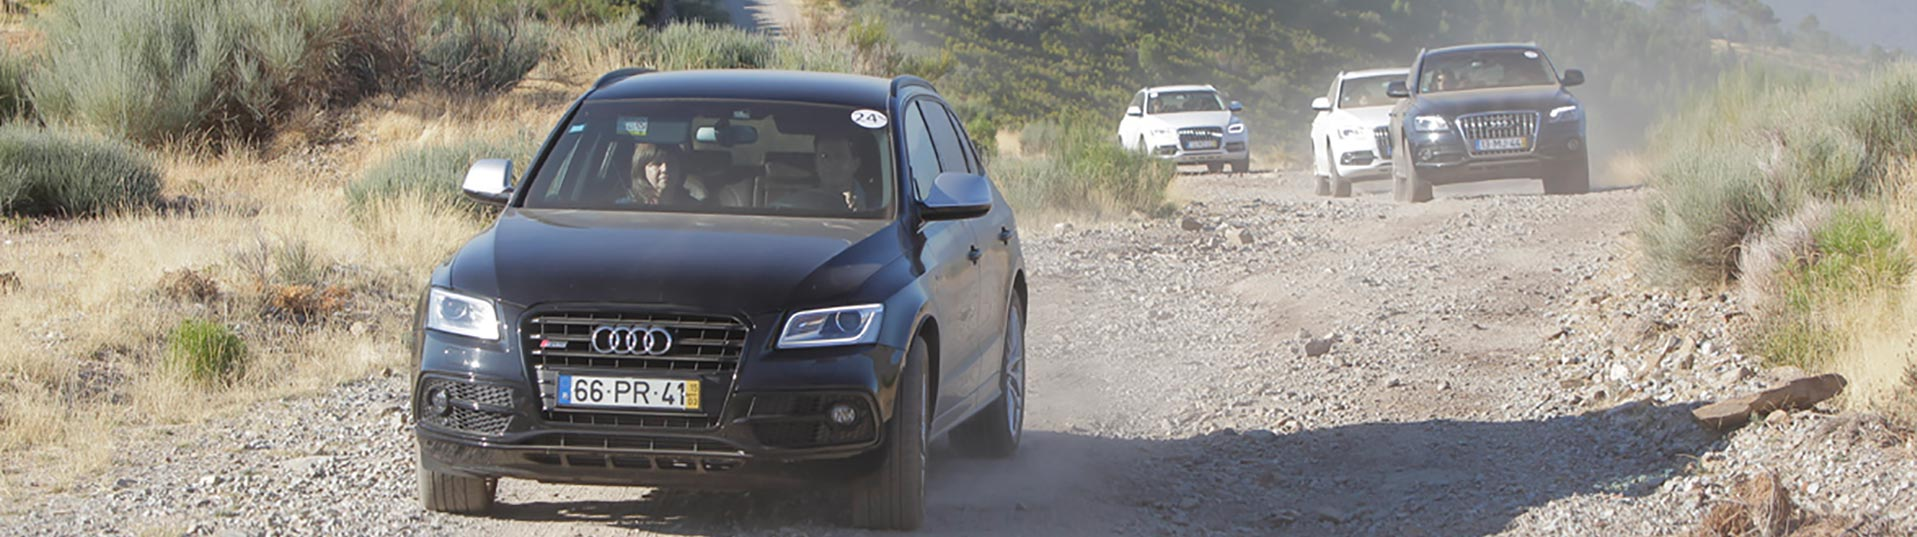 Audi Offroad Experience